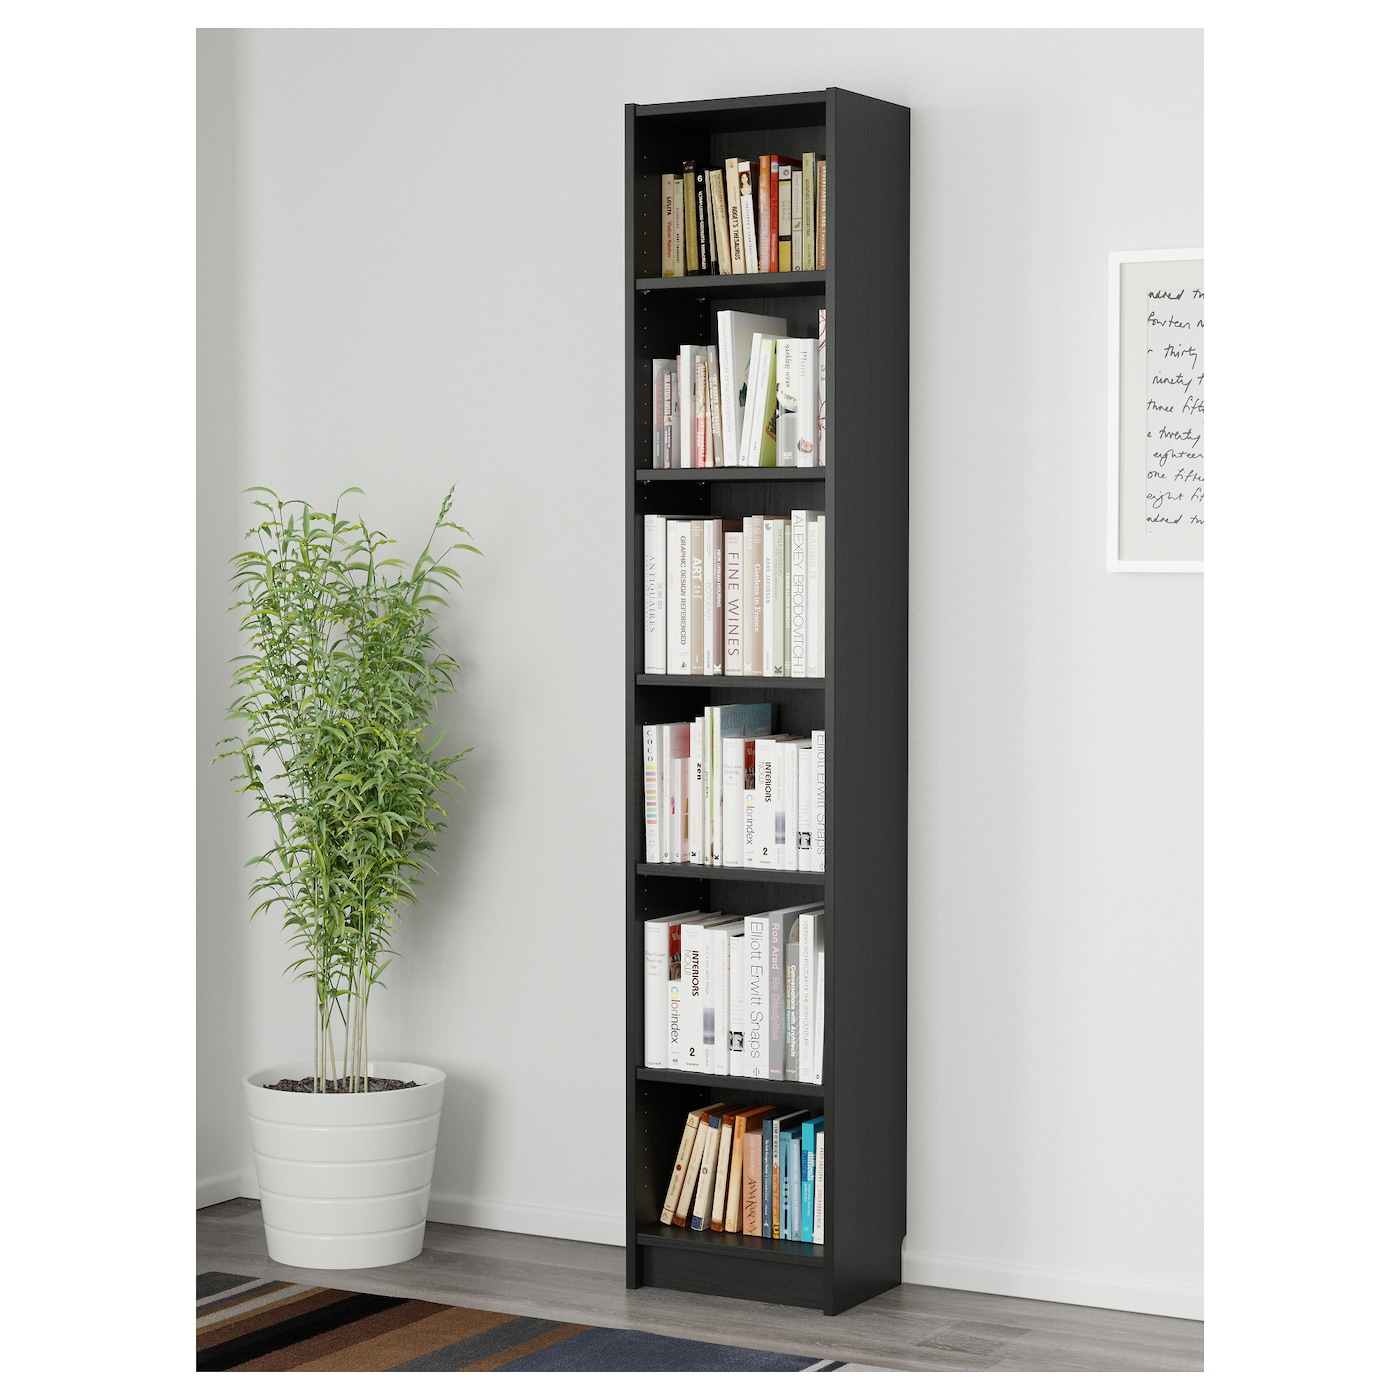 billy bookcase black brown 40 x 28 x 202 cm ikea. Black Bedroom Furniture Sets. Home Design Ideas